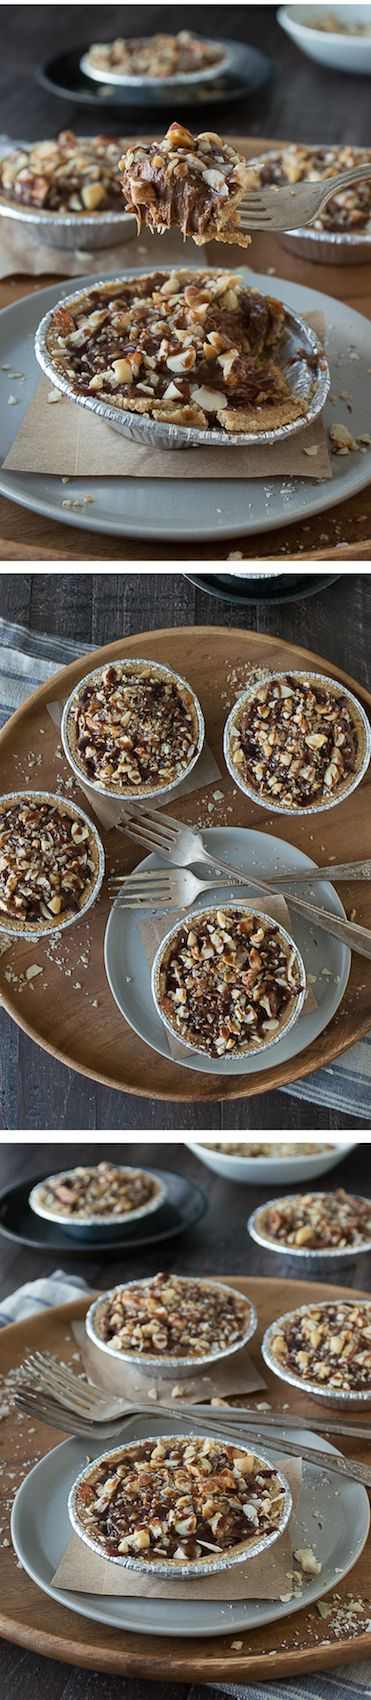 No bake mini pies with 2 layers of mixed nuts and a rich chocolate filling, all topped with chocolate and caramel! OMG these look sooooo good!!! Love making mini things!